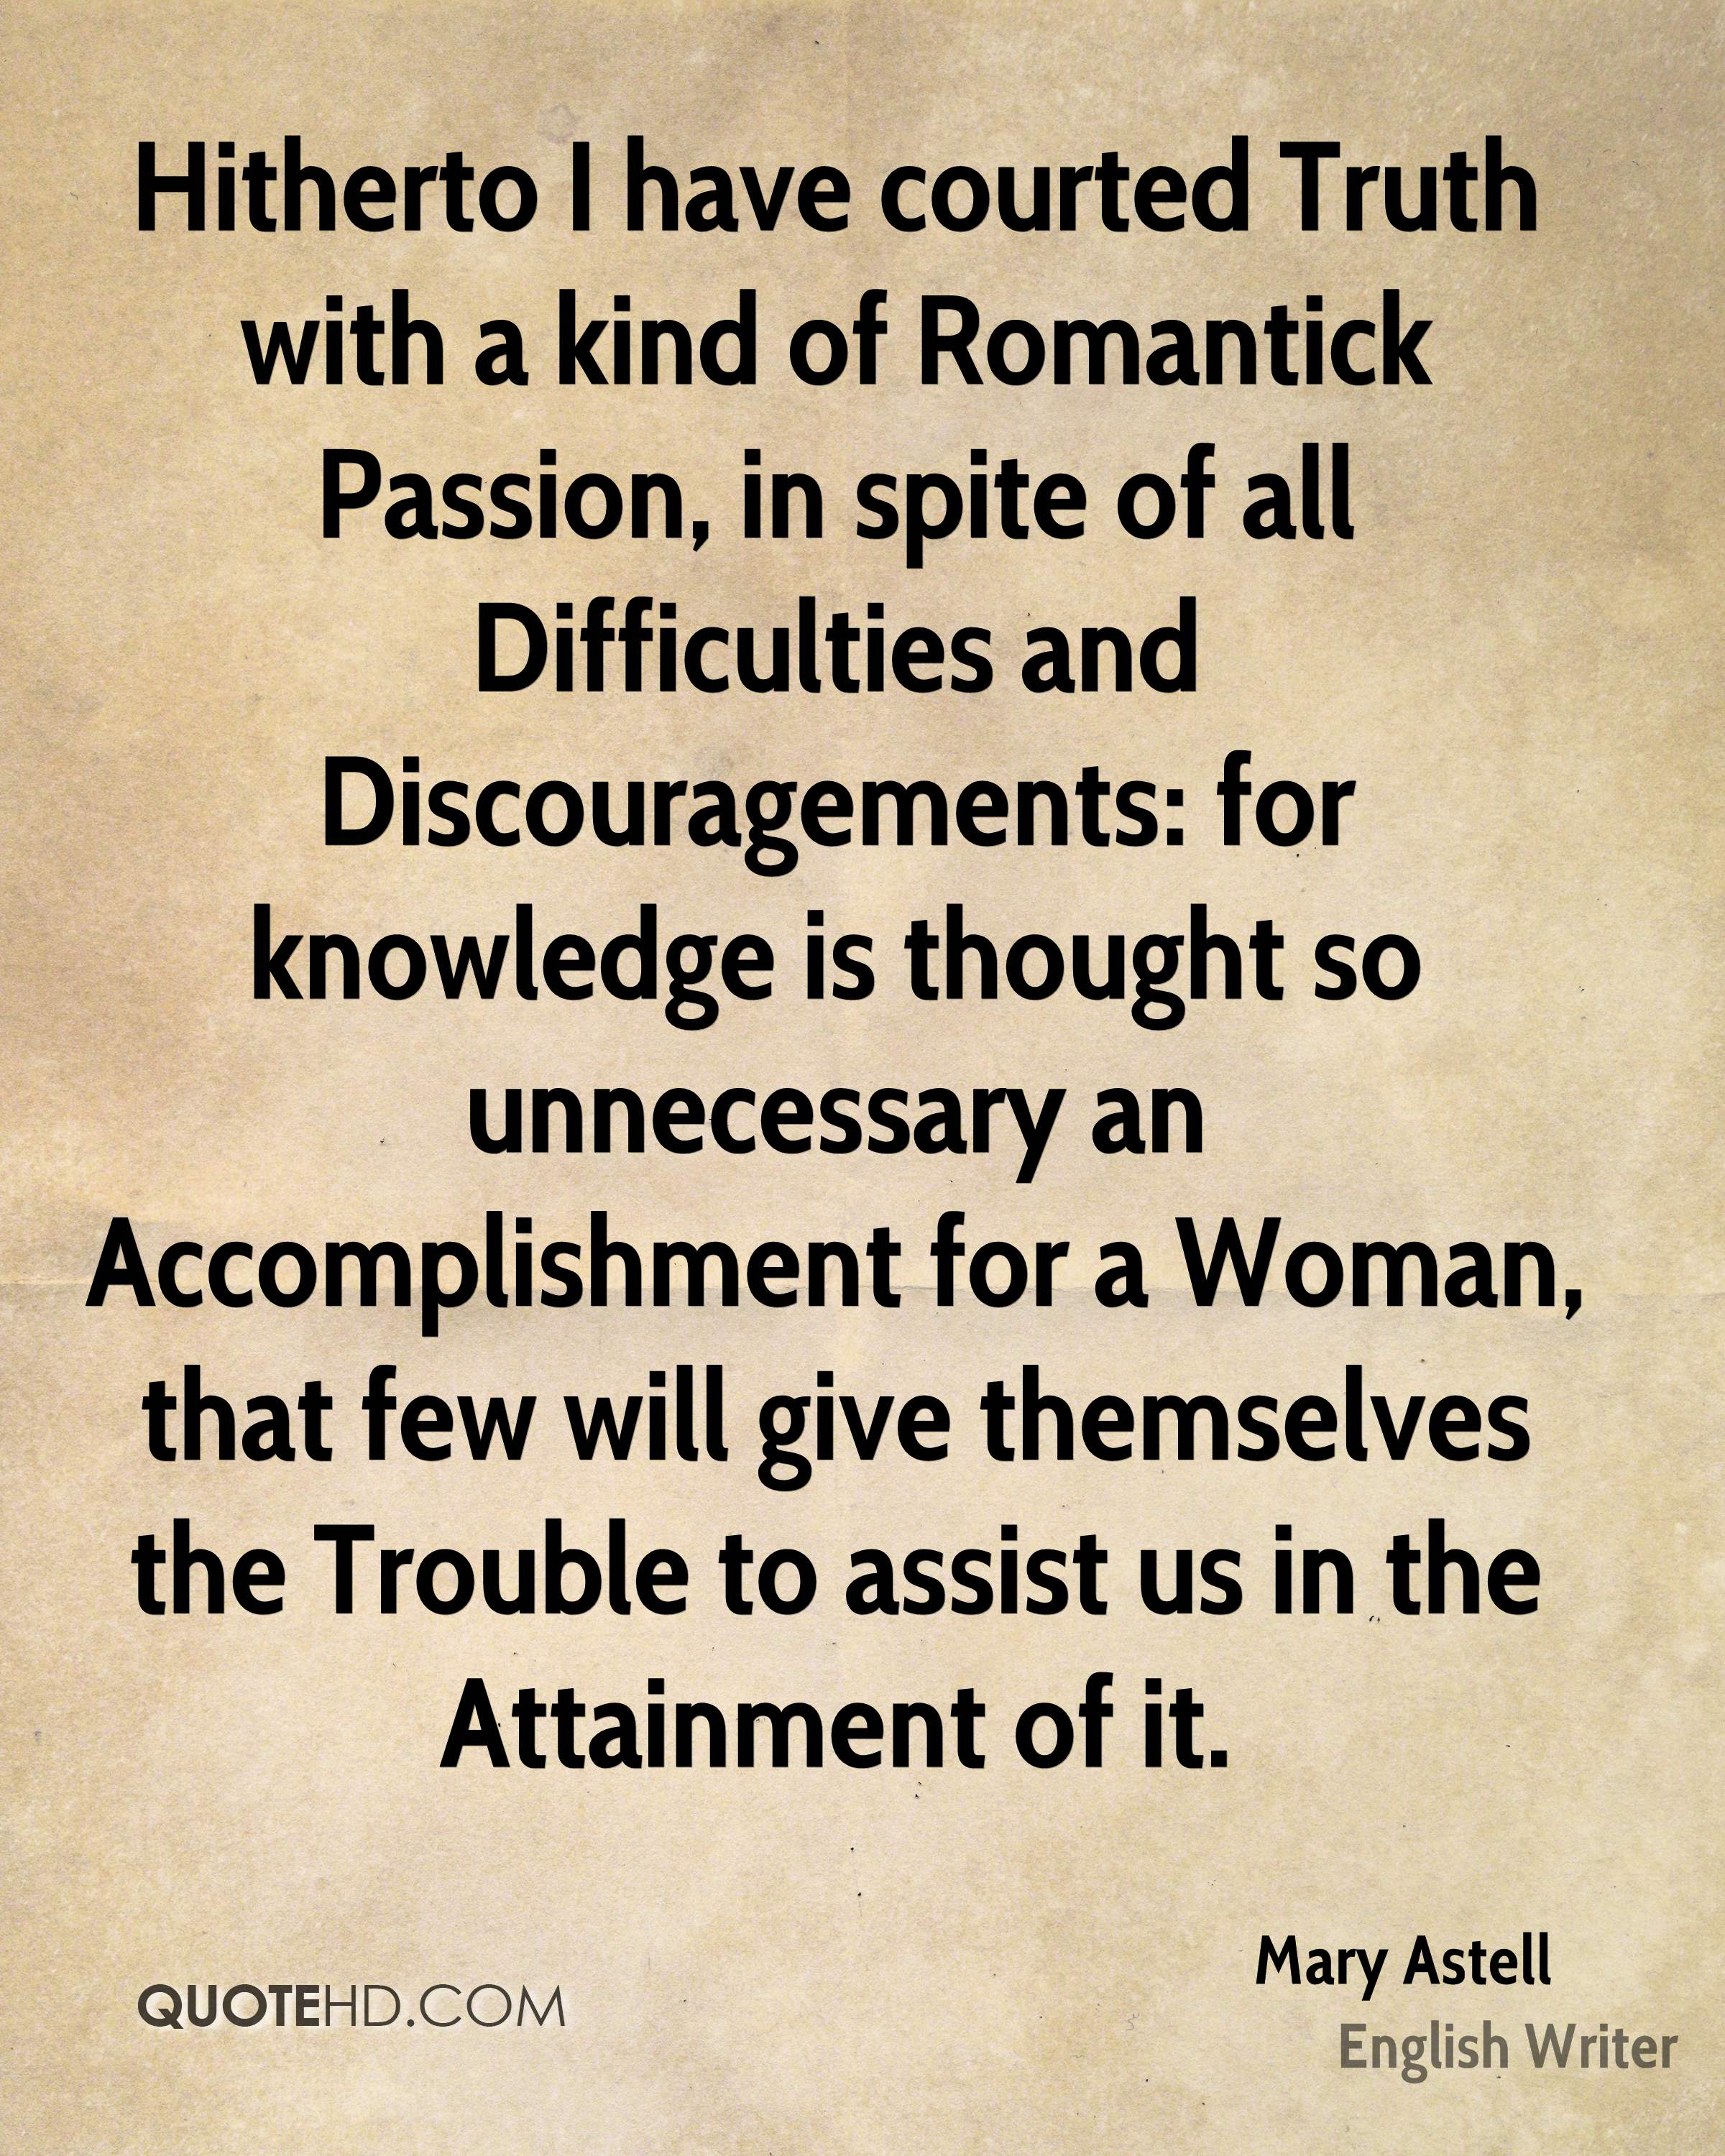 Hitherto I have courted Truth with a kind of Romantick Passion, in spite of all Difficulties and Discouragements: for knowledge is thought so unnecessary an Accomplishment for a Woman, that few will give themselves the Trouble to assist us in the Attainment of it.